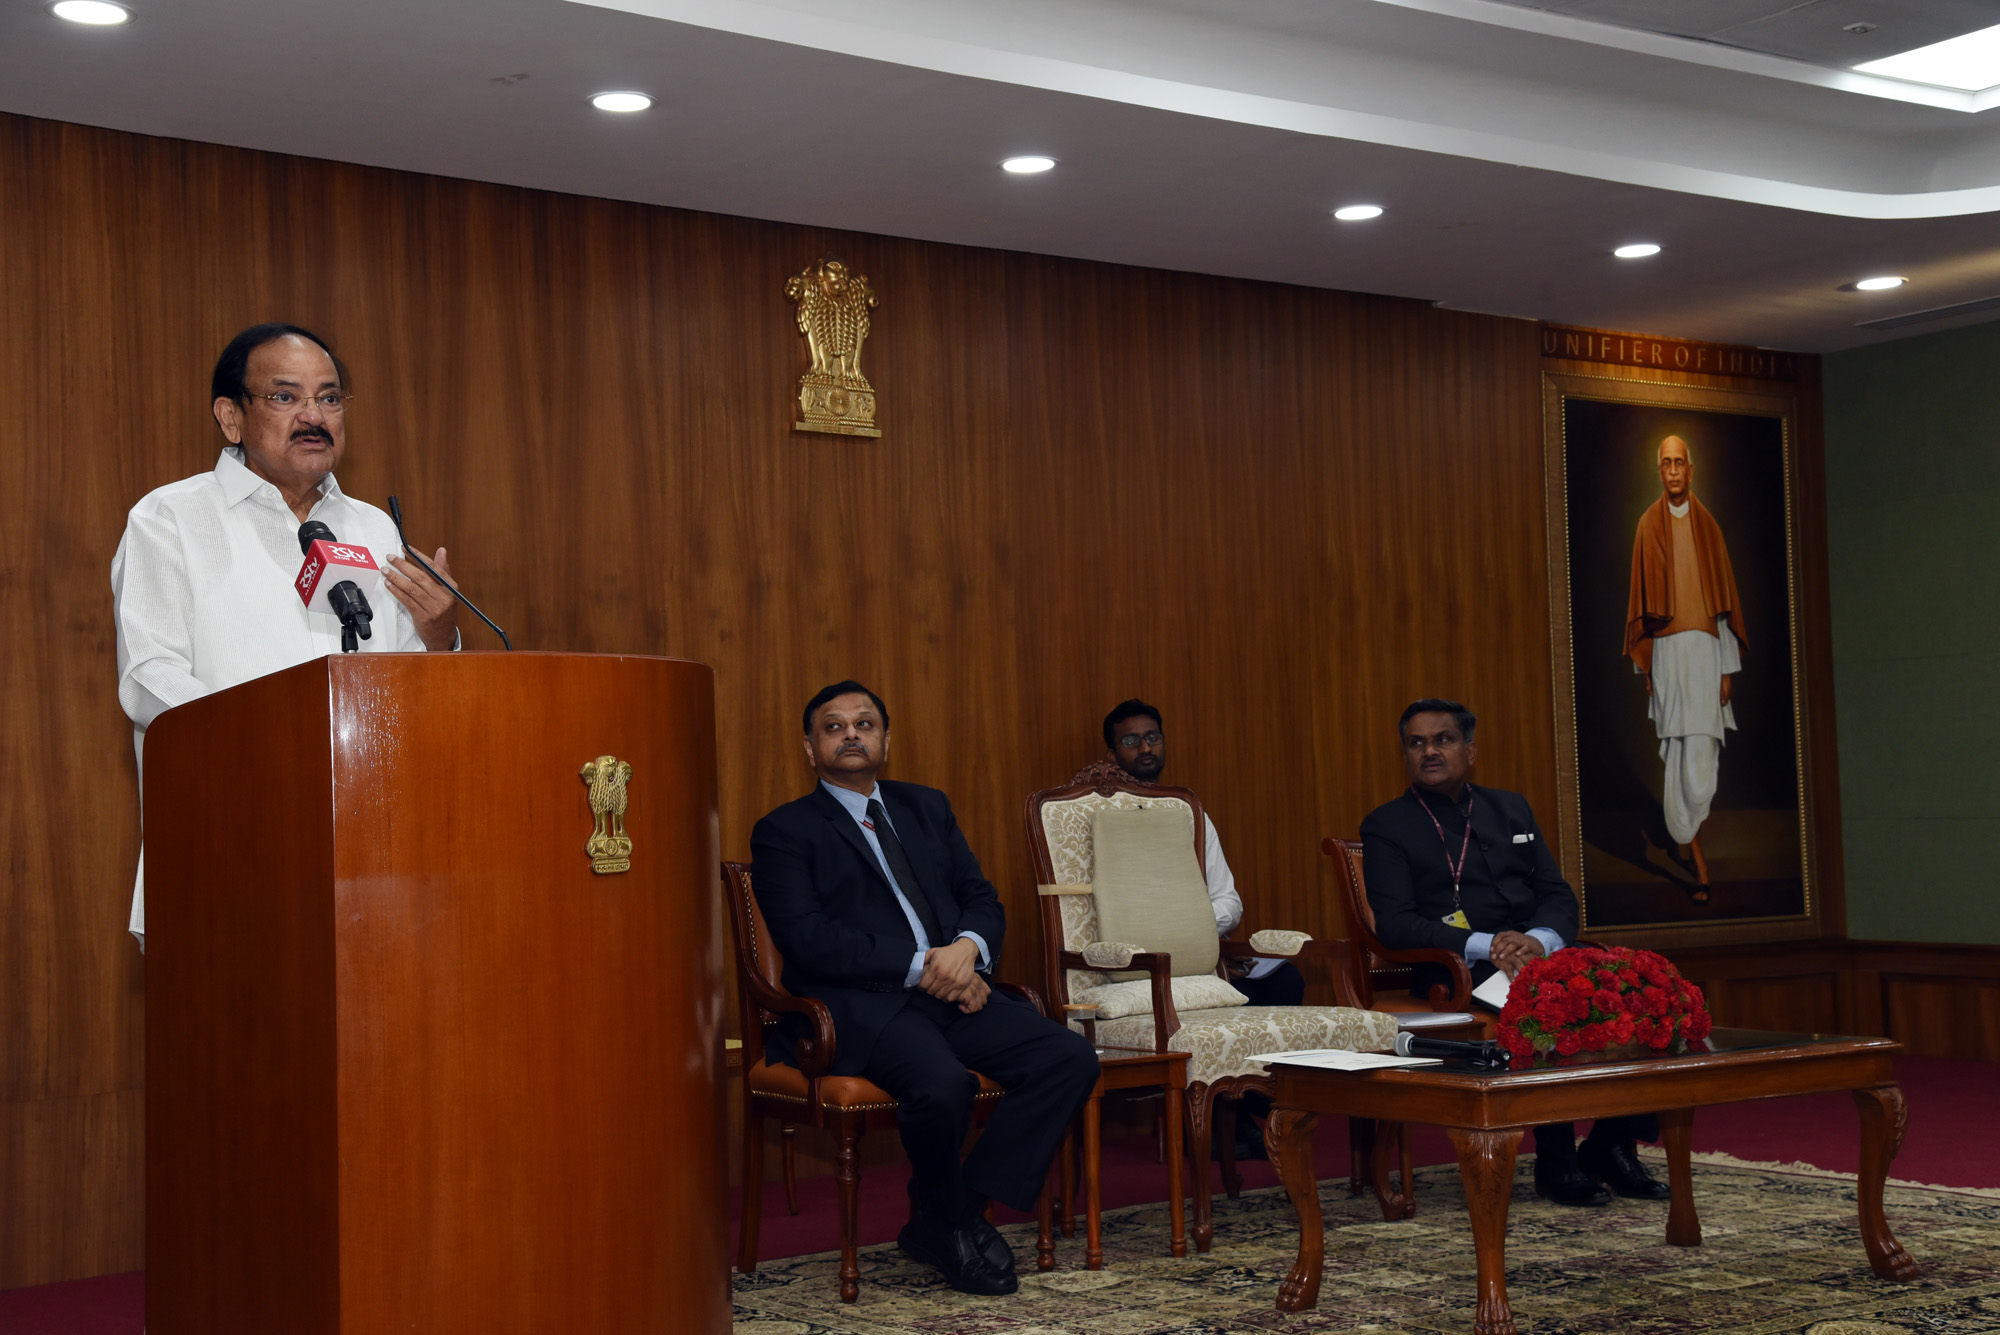 The Vice President, Shri M. Venkaiah Naidu addressing the Officers of the 2017 batch of Indian Administrative Service (IAS), in New Delhi on September 12, 2019.